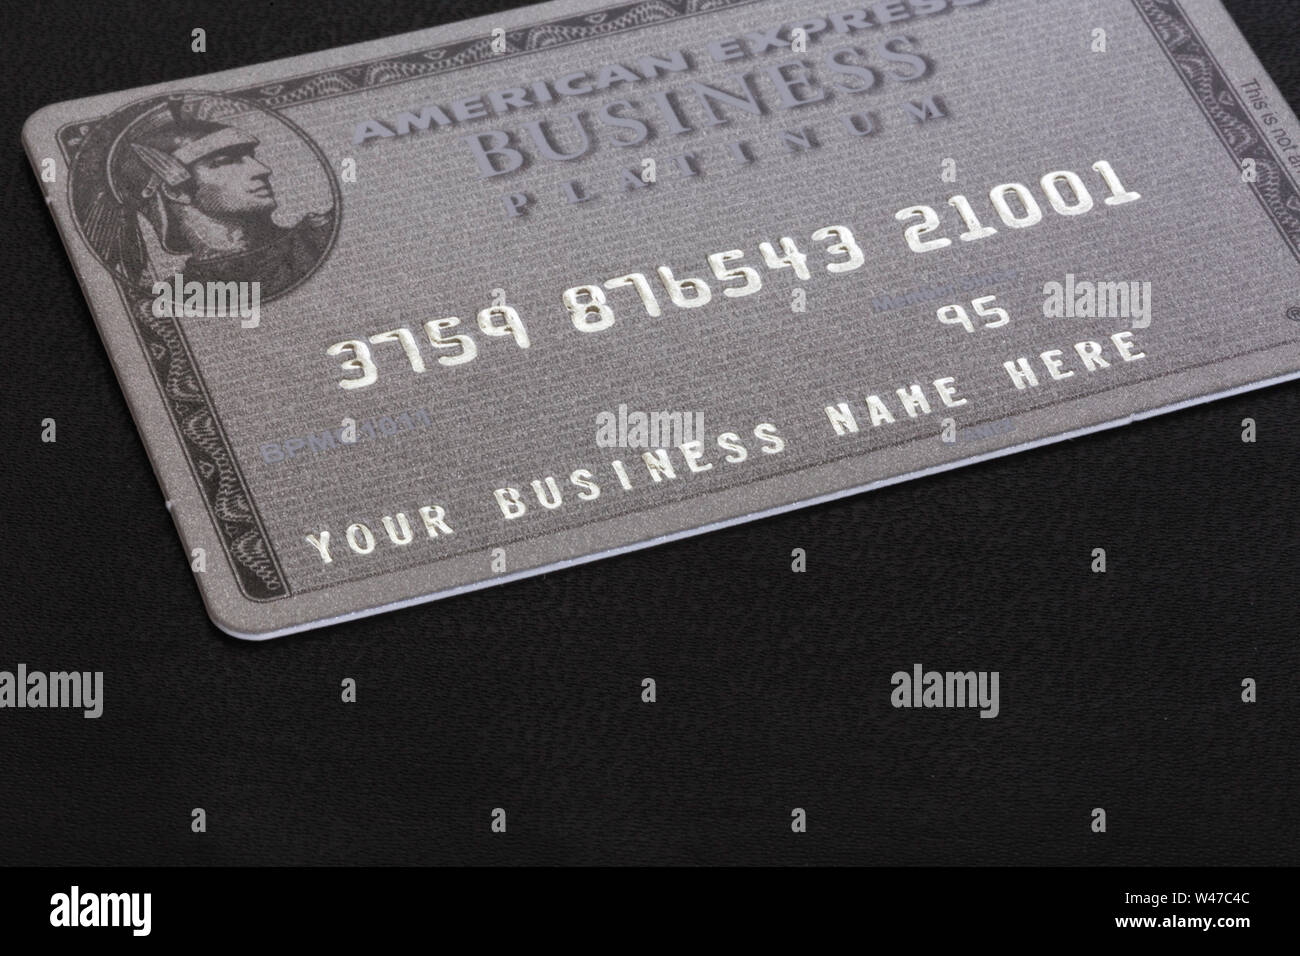 American Express Usa >> American Express Business Credit Card Usa Stock Photo